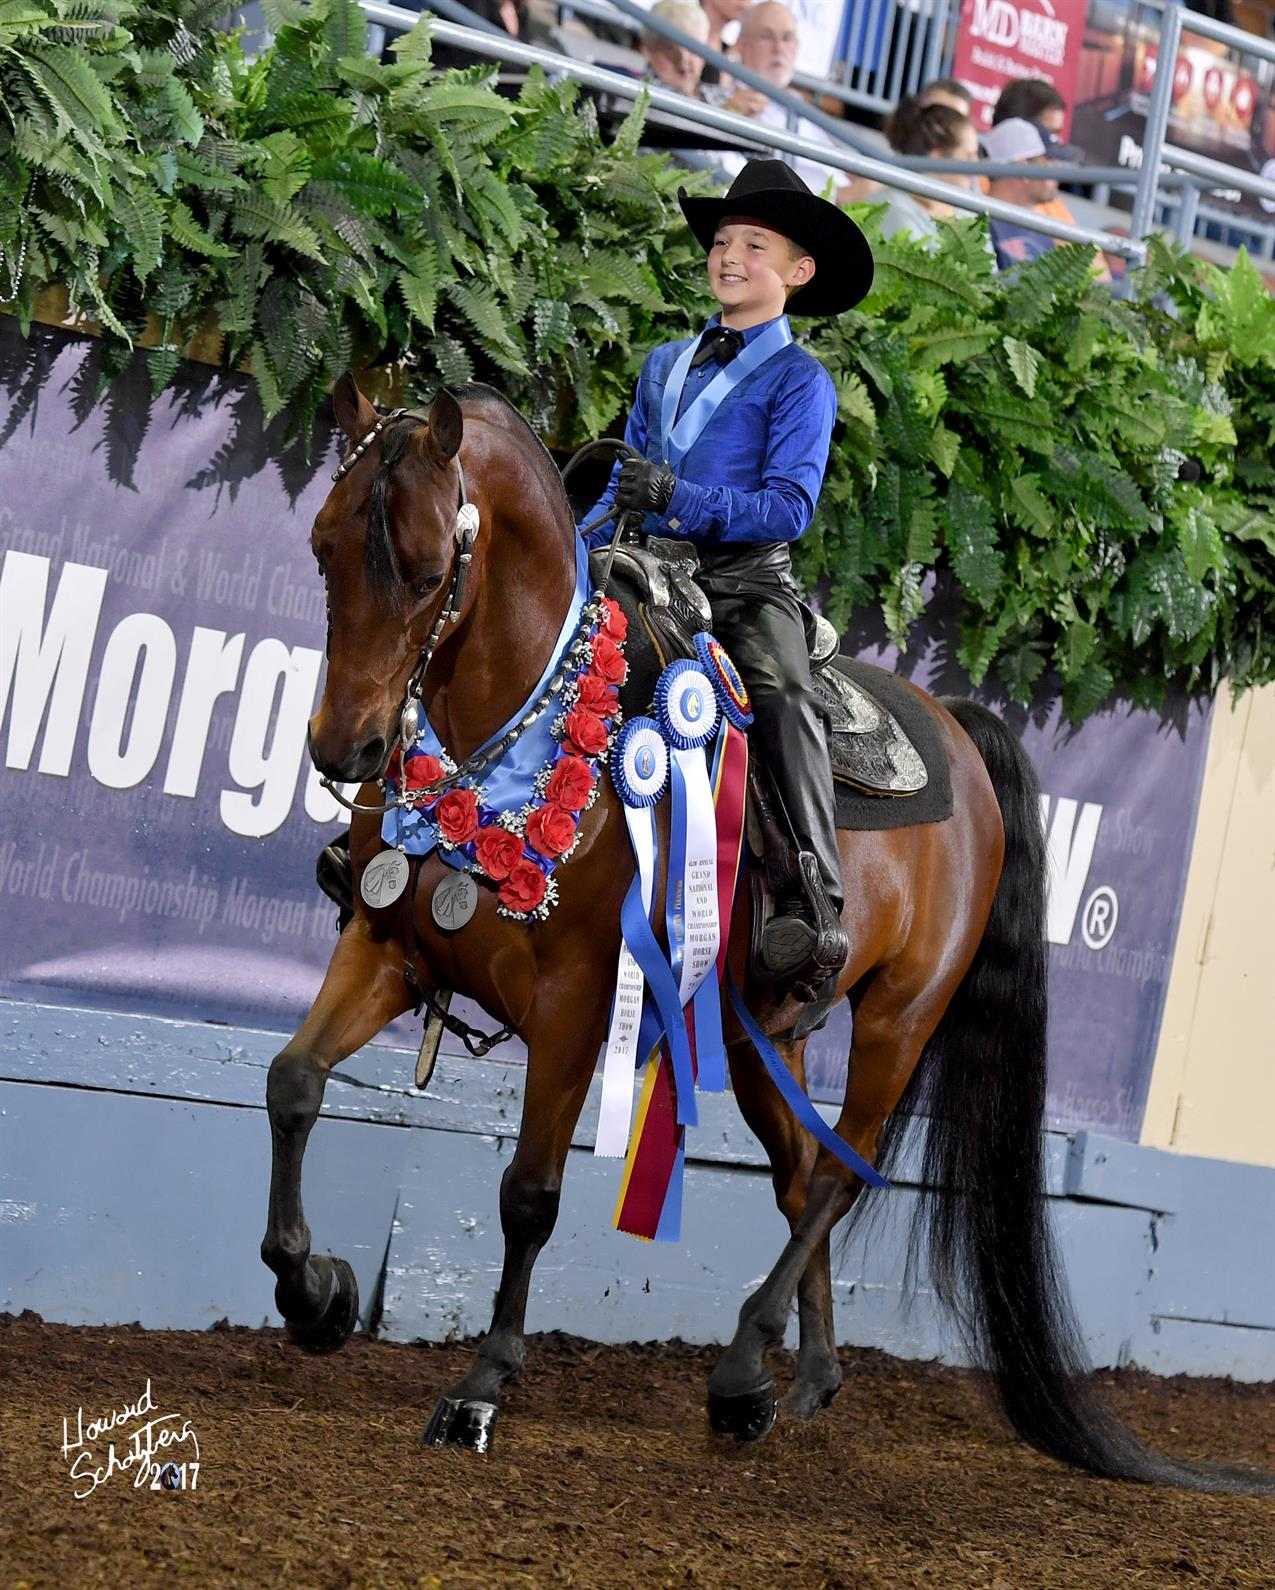 Morgan Horse Breed Celebrated In Oklahoma City | US Equestrian